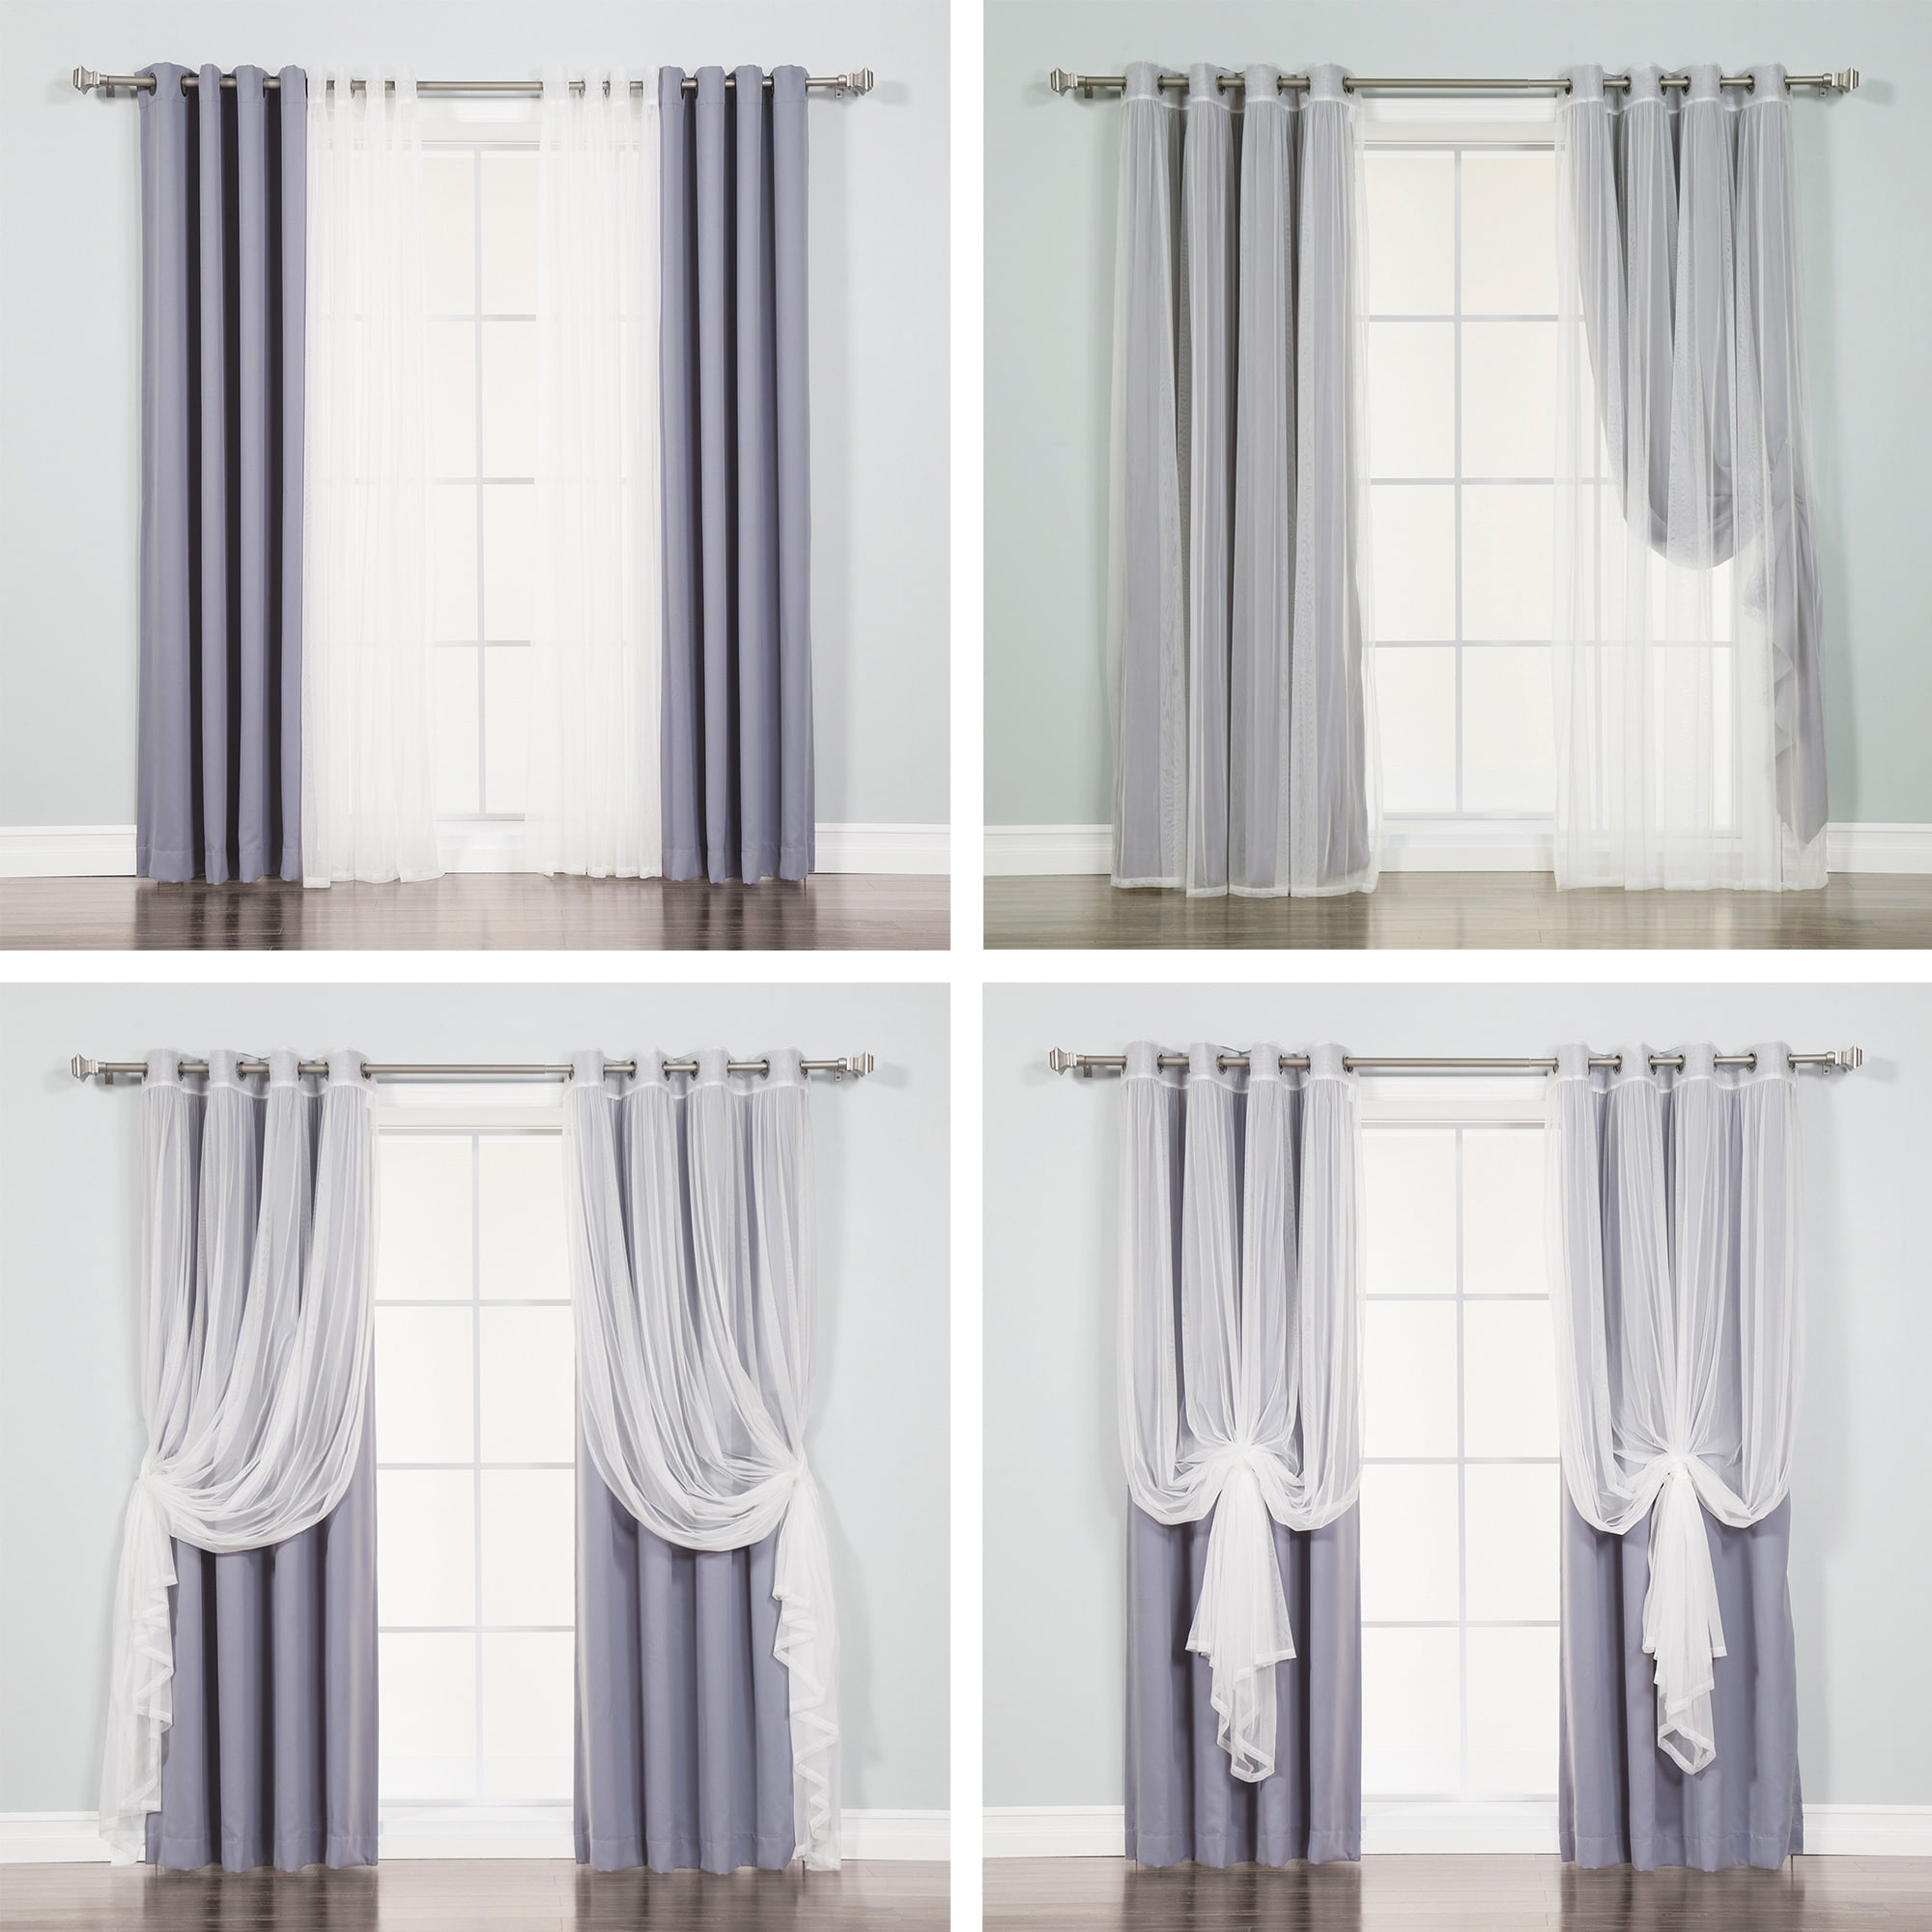 Aurora Home Mix & Match Tulle Sheer With Attached Valance And Blackout 4 Piece Curtain Panel Pair Intended For Tulle Sheer With Attached Valance And Blackout 4 Piece Curtain Panel Pairs (View 4 of 30)